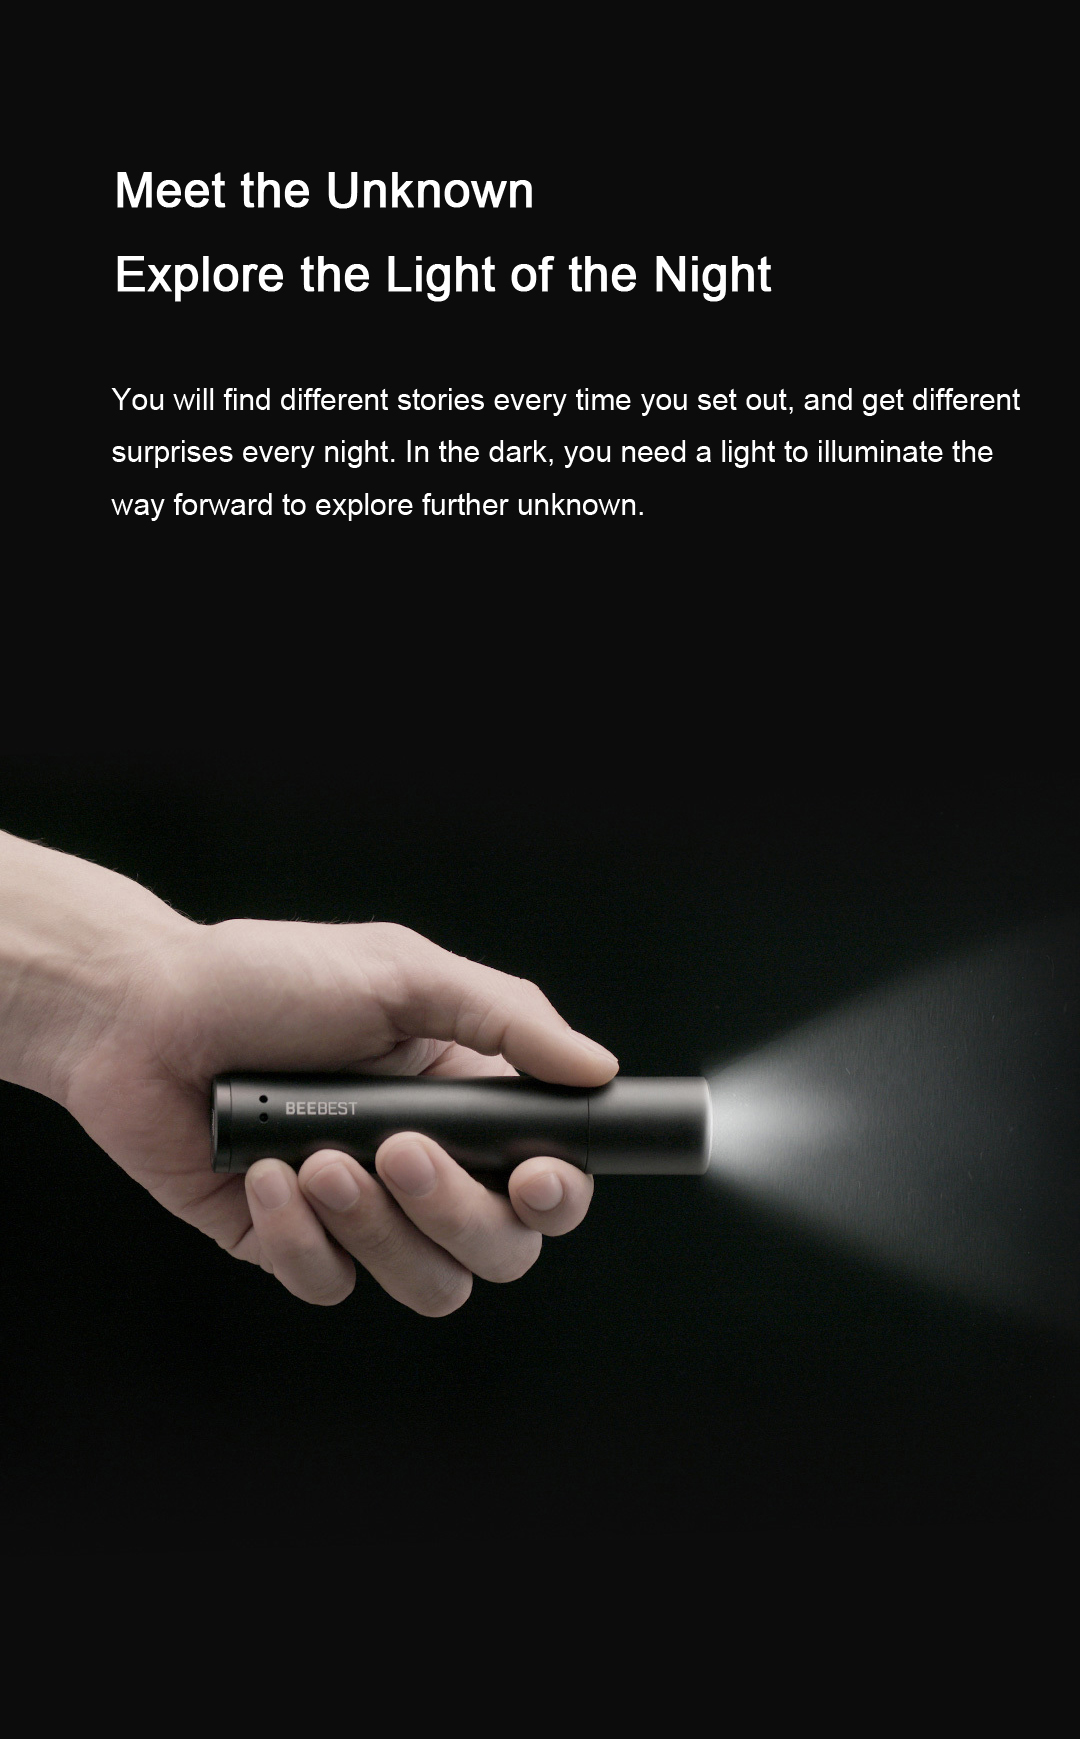 BEEBEST FZ101 XP-L HI 1000LM 5Modes Zoomable Portable EDC Flashlight From Xiaomi Youpin